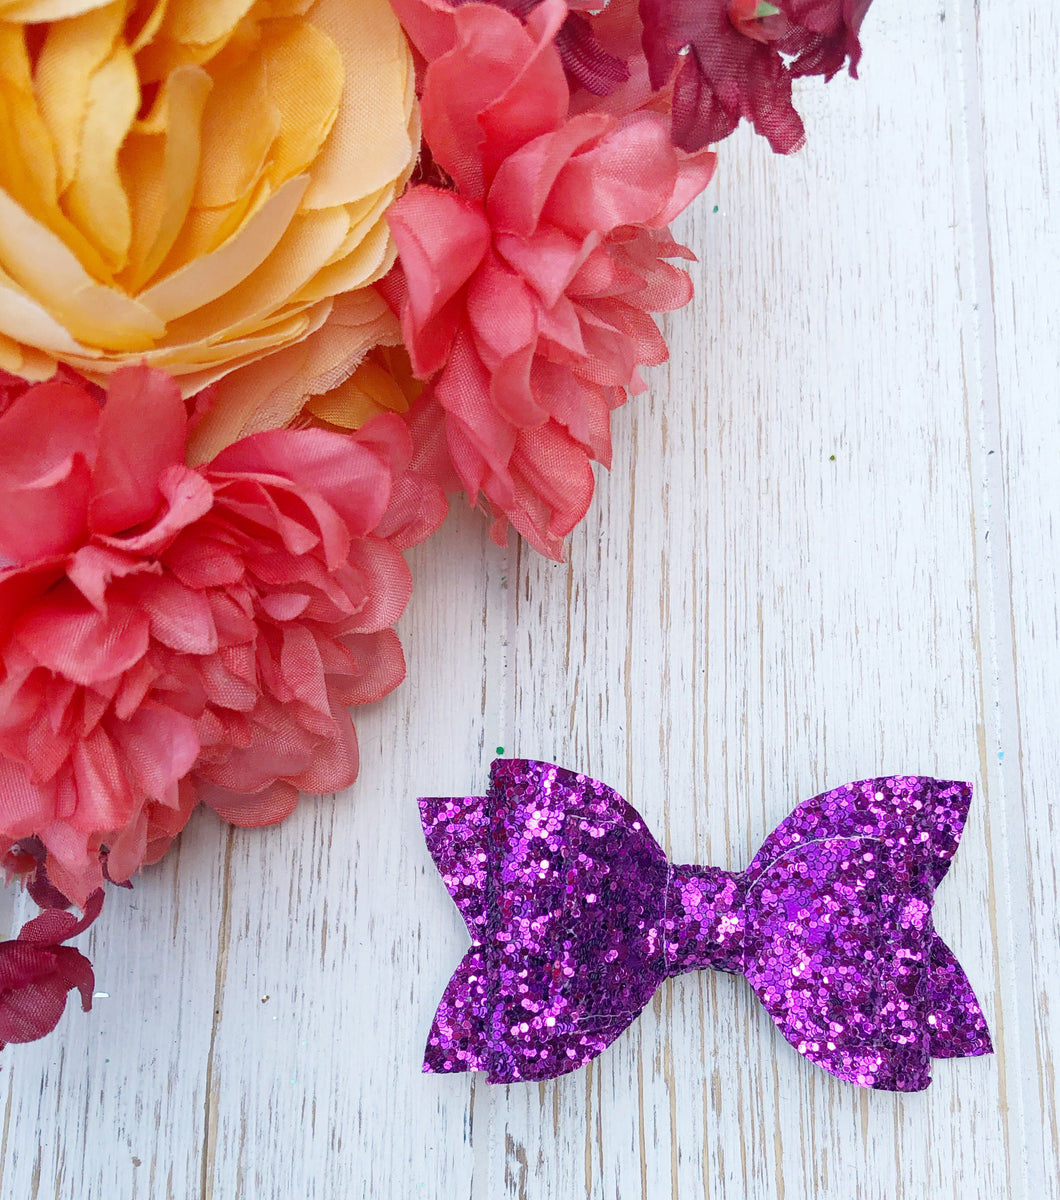 glitter, glitter bow, braid, hair clip, girl, toddler, bow, bows, headband, headbands, head wrap, baby, baby shower, baby photography, photography prop, girl hair style, hairstyles, Fabric Bow, faux leather bow, Hair bow, newborn bow, girls hair bow, toddler hair bow, newborn photography, hair accessory, baby girl, fall purple glitter bow